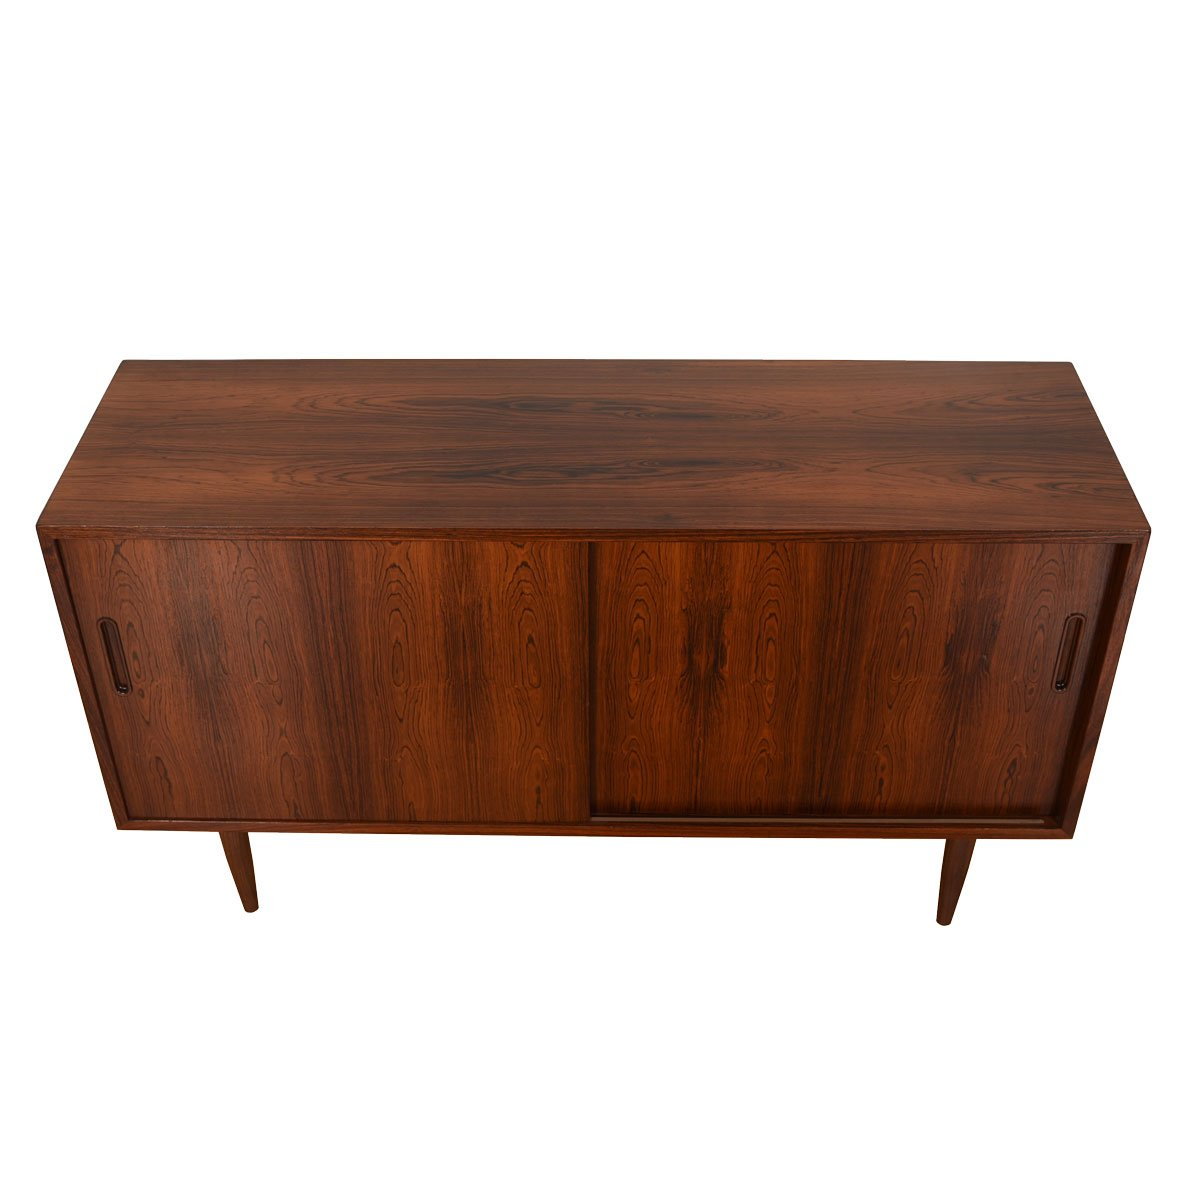 Rosewood Condo-Sized Sliding Door Sideboard / Media Cabinet.